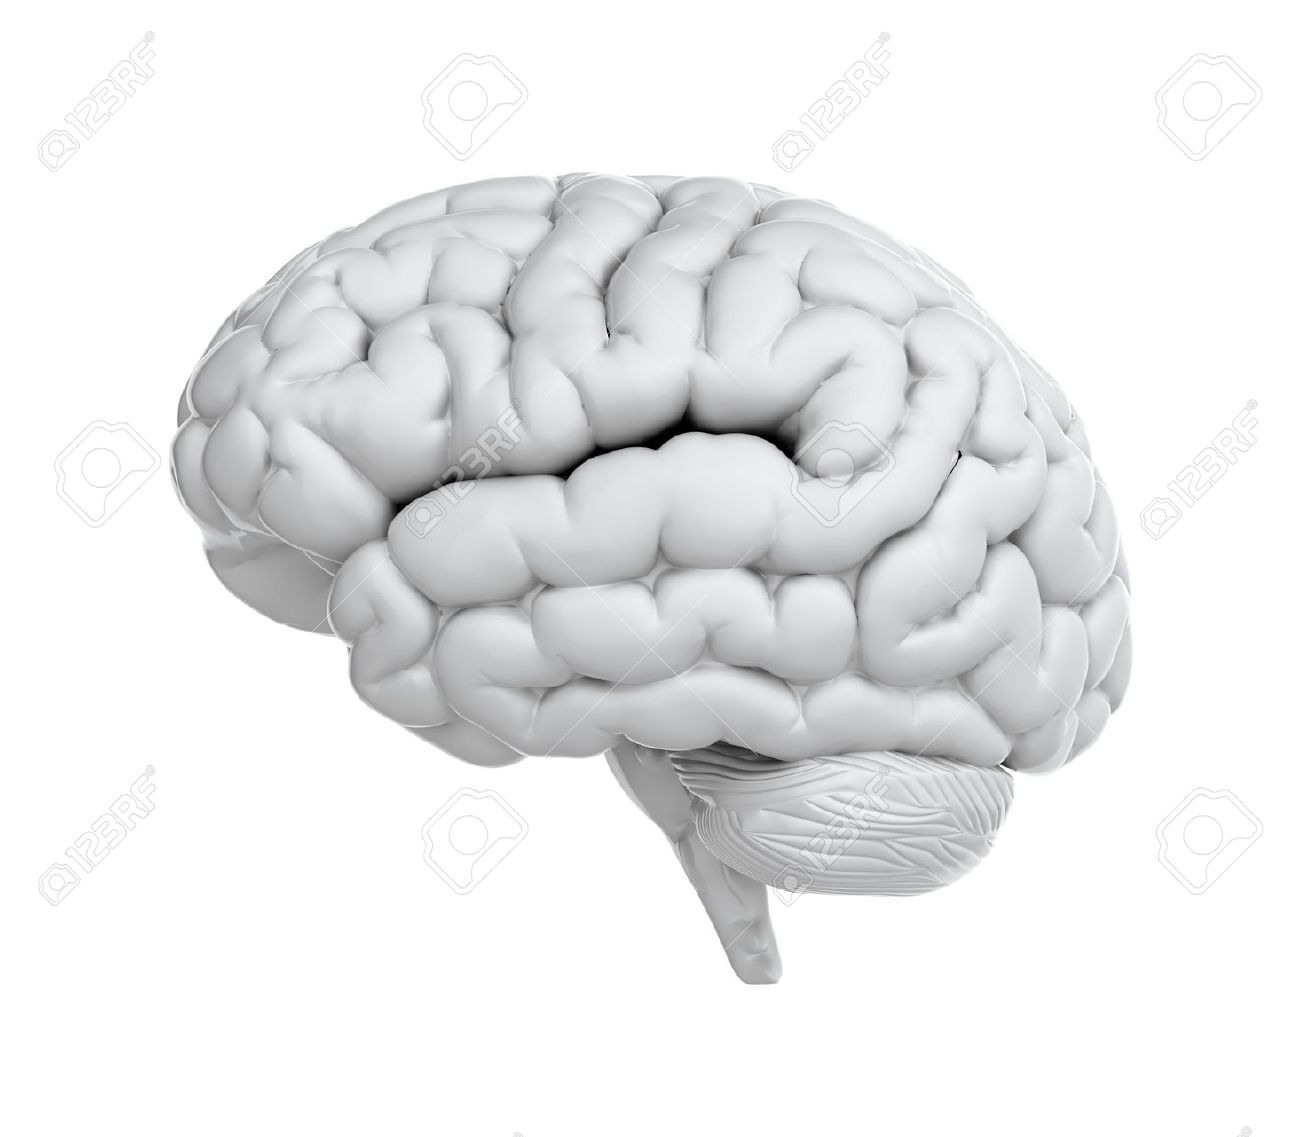 3d Render Of Brain On White Background Stock Photo, Picture And ...